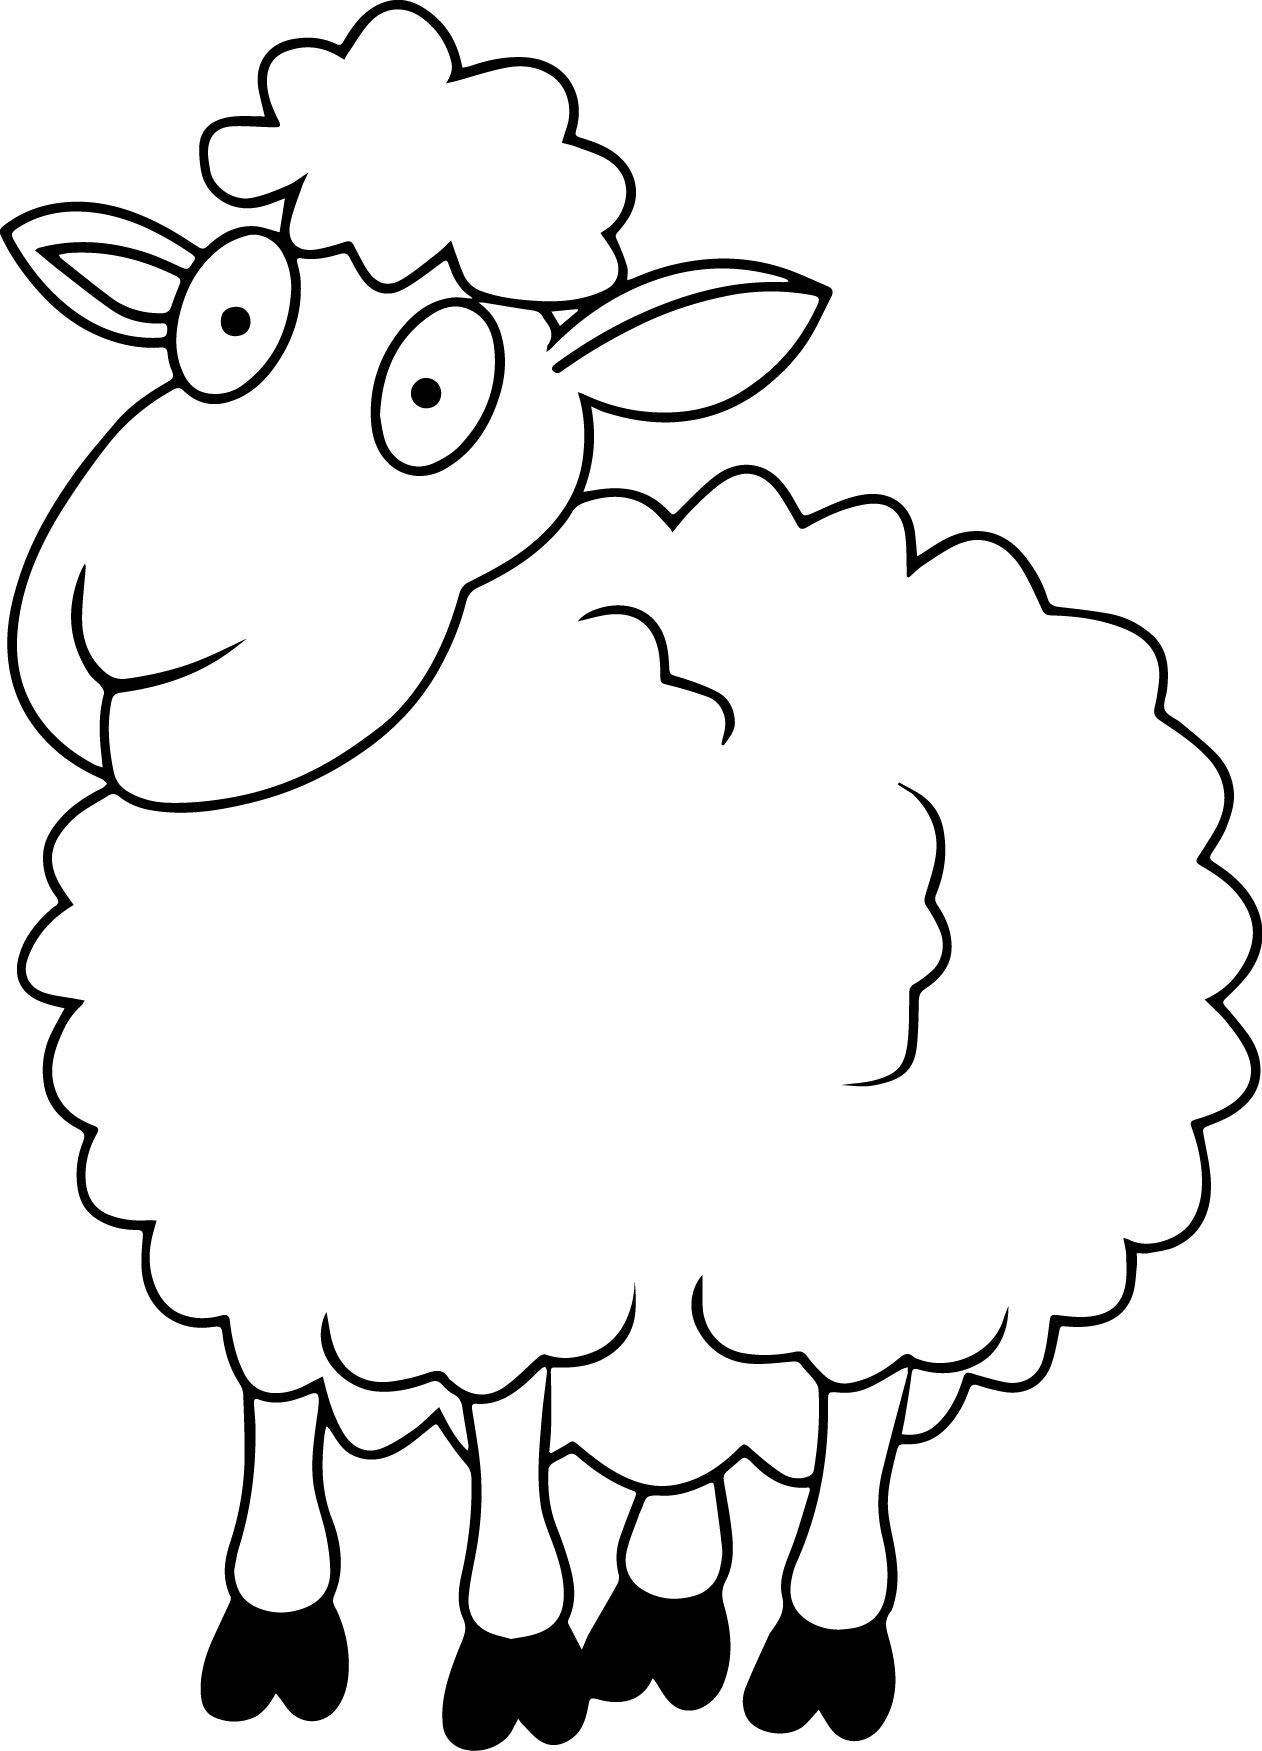 coloring book sheep free printable sheep coloring pages for kids coloring sheep book